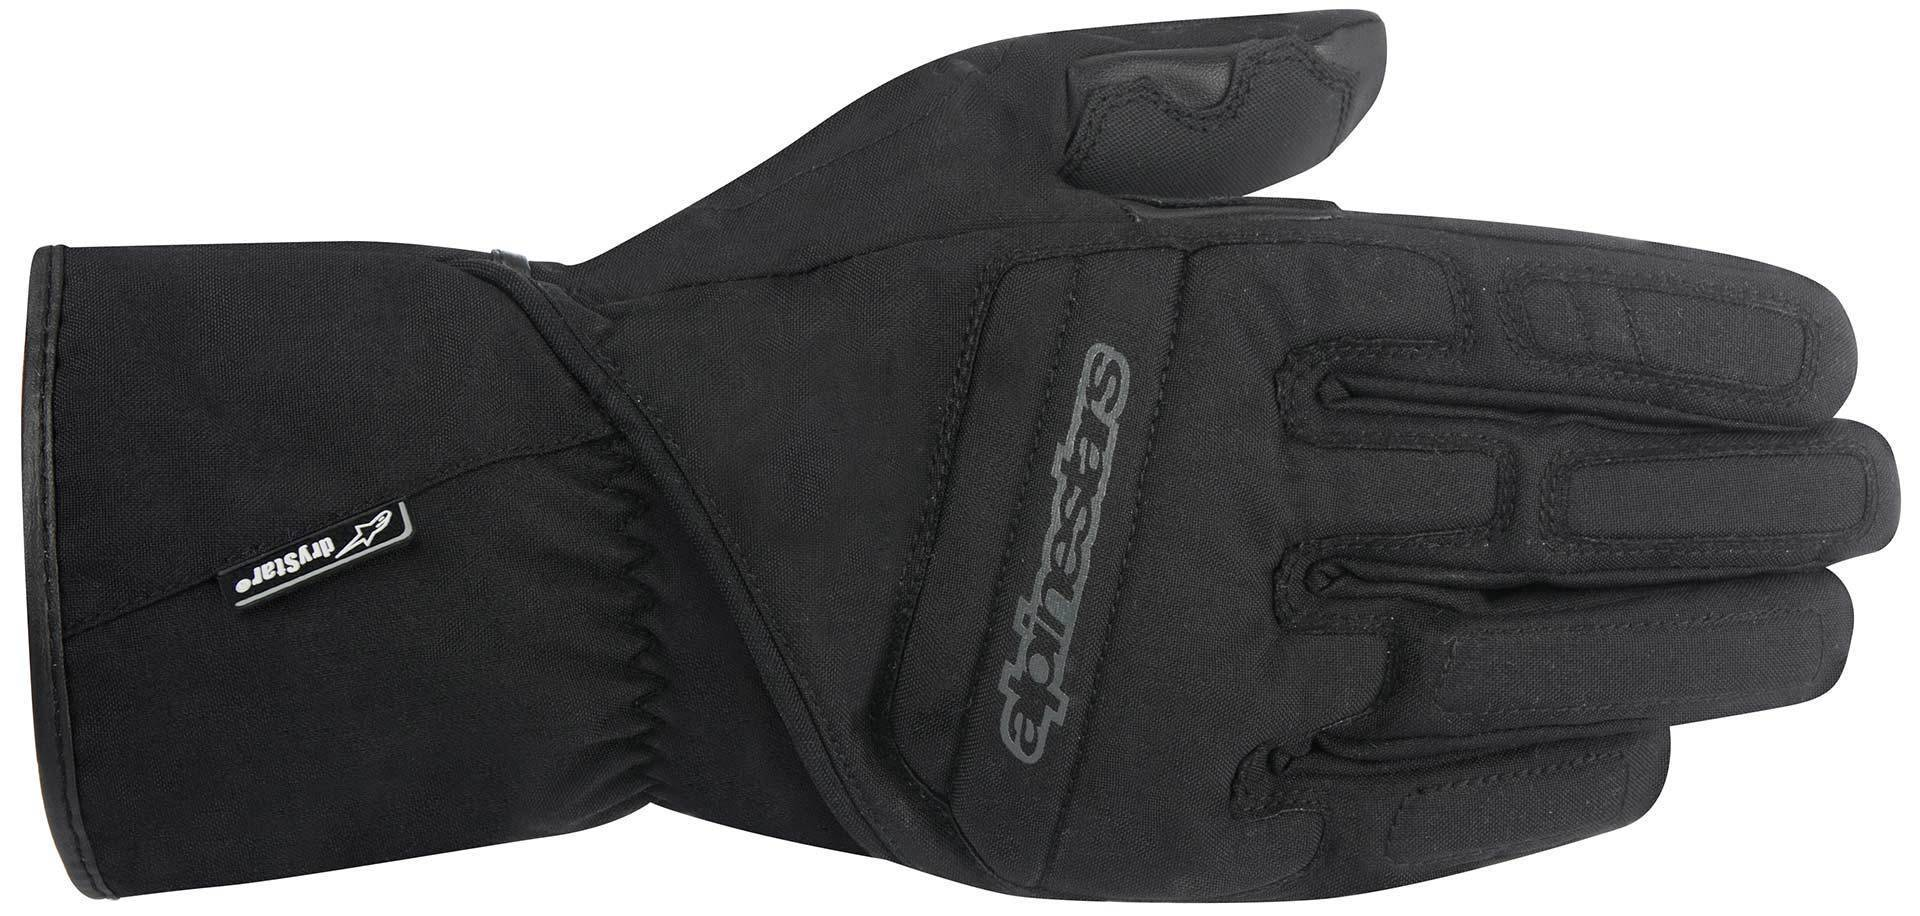 Alpinestars SR-3 Drystar Waterproof Gloves 2016 Black S